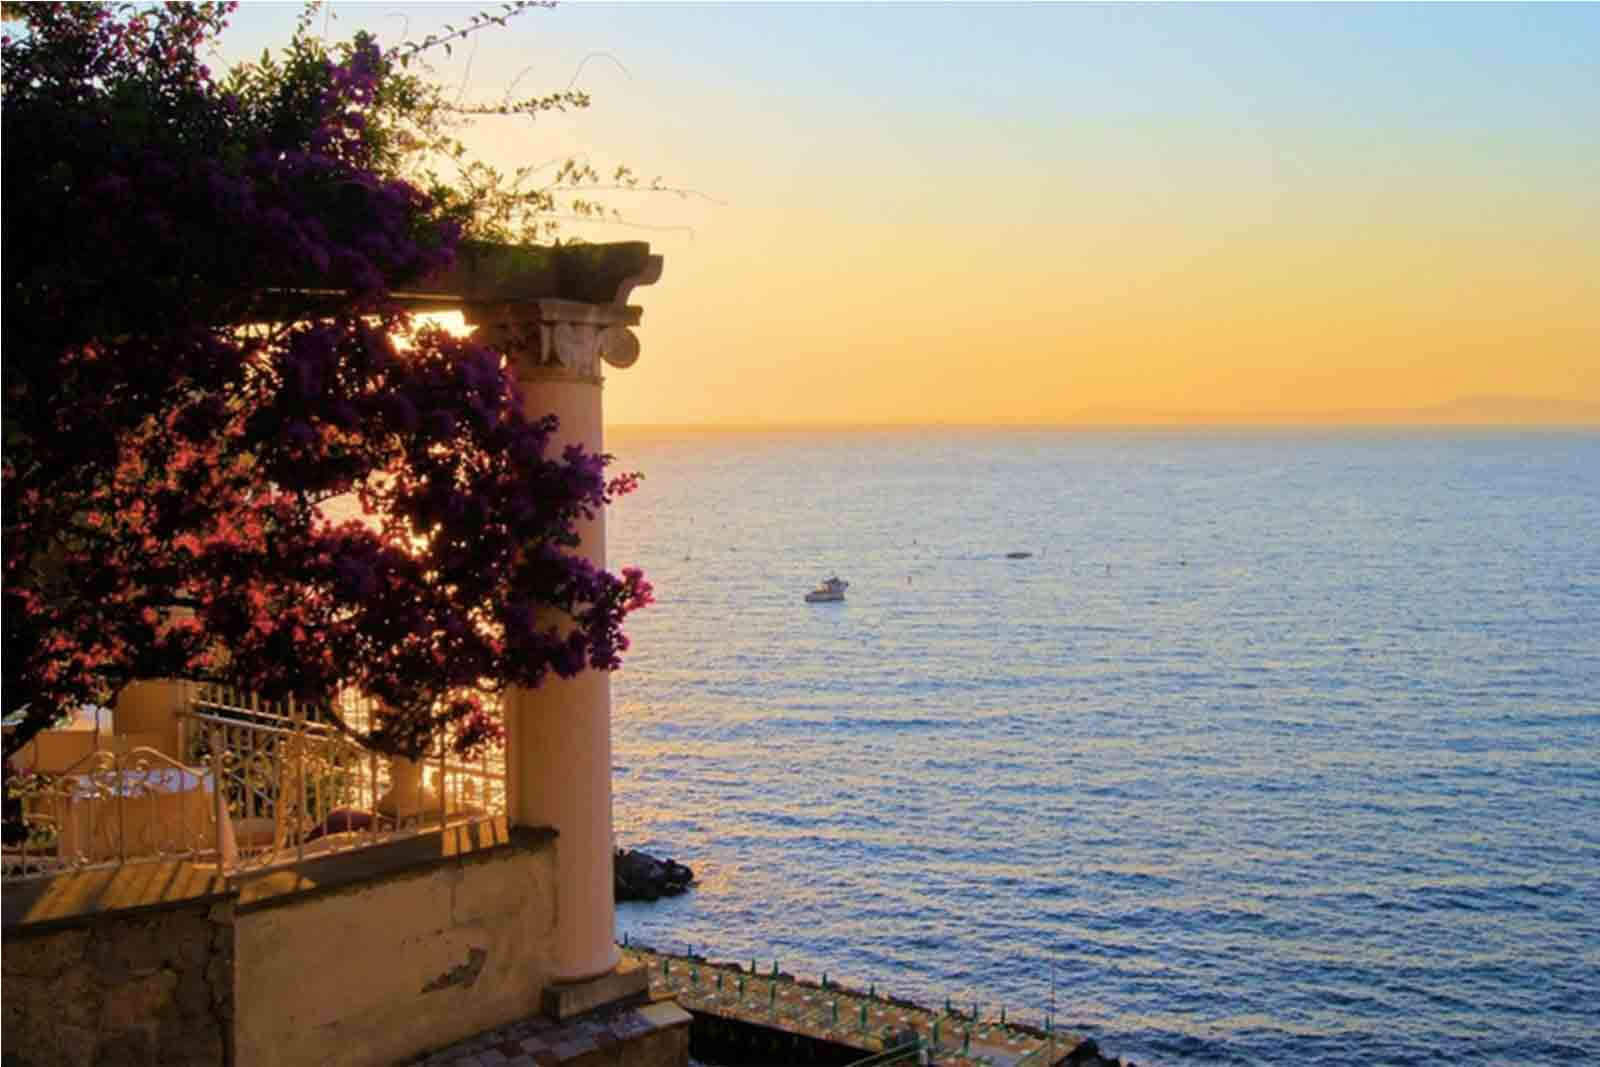 Romantic Amalfi Coast for your celebrations 10-day